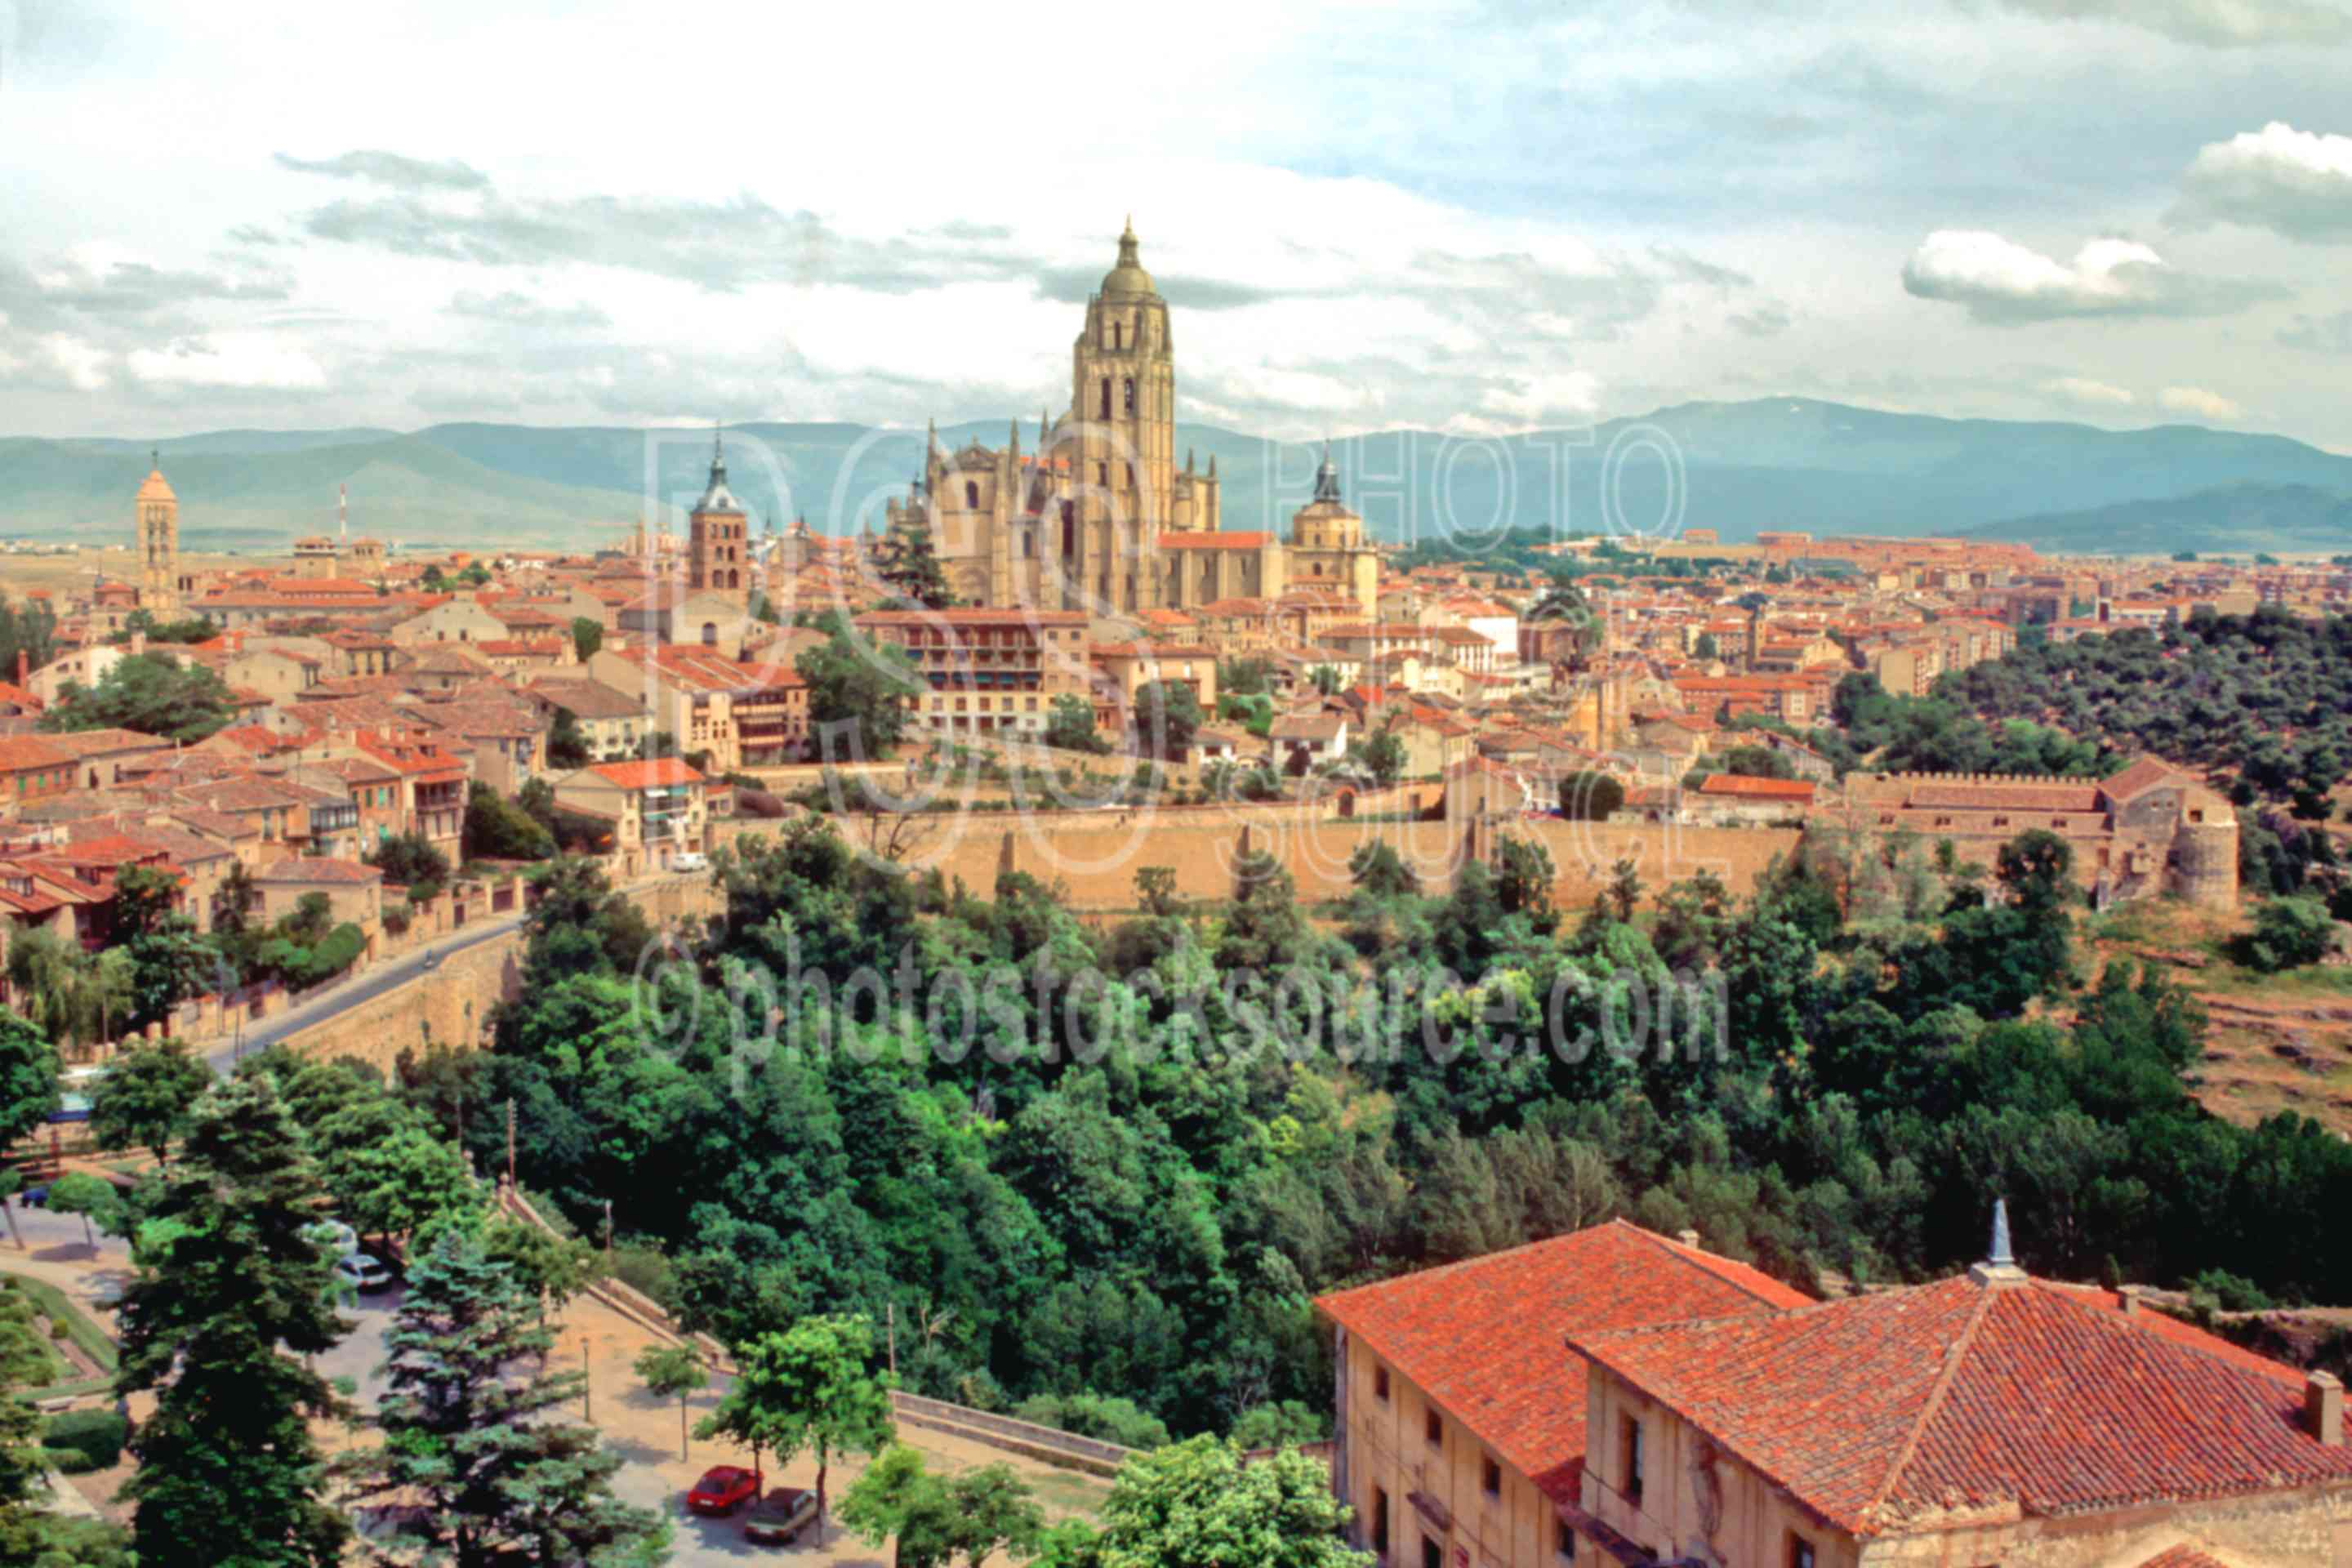 The Cathedral,cathedral,church,europe,churches,religion